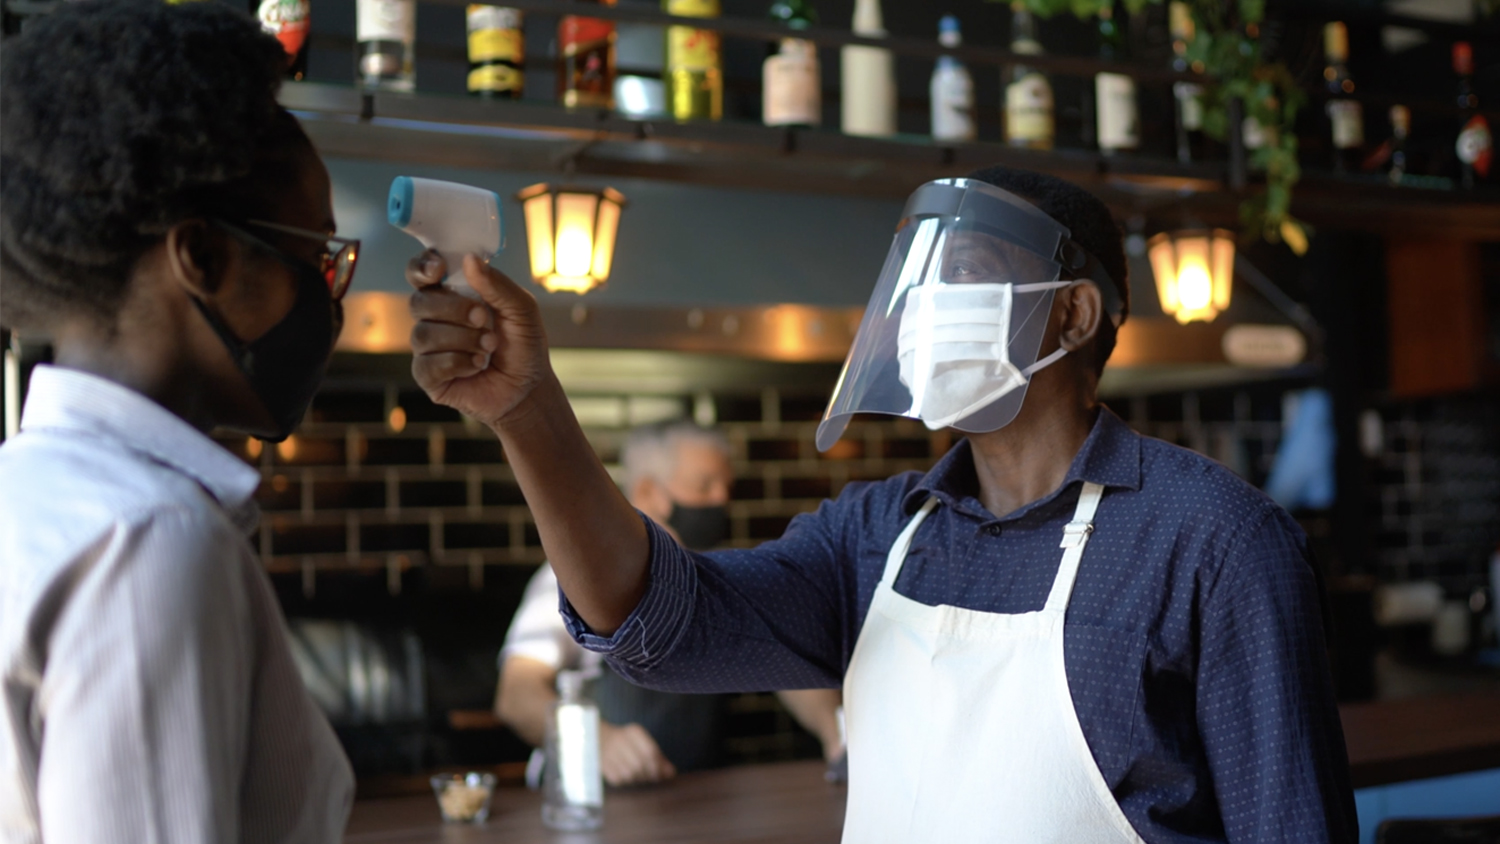 A restaurant employee wearing a face shield uses a digital thermometer to take the temperature of a guest when entering the restaurant.